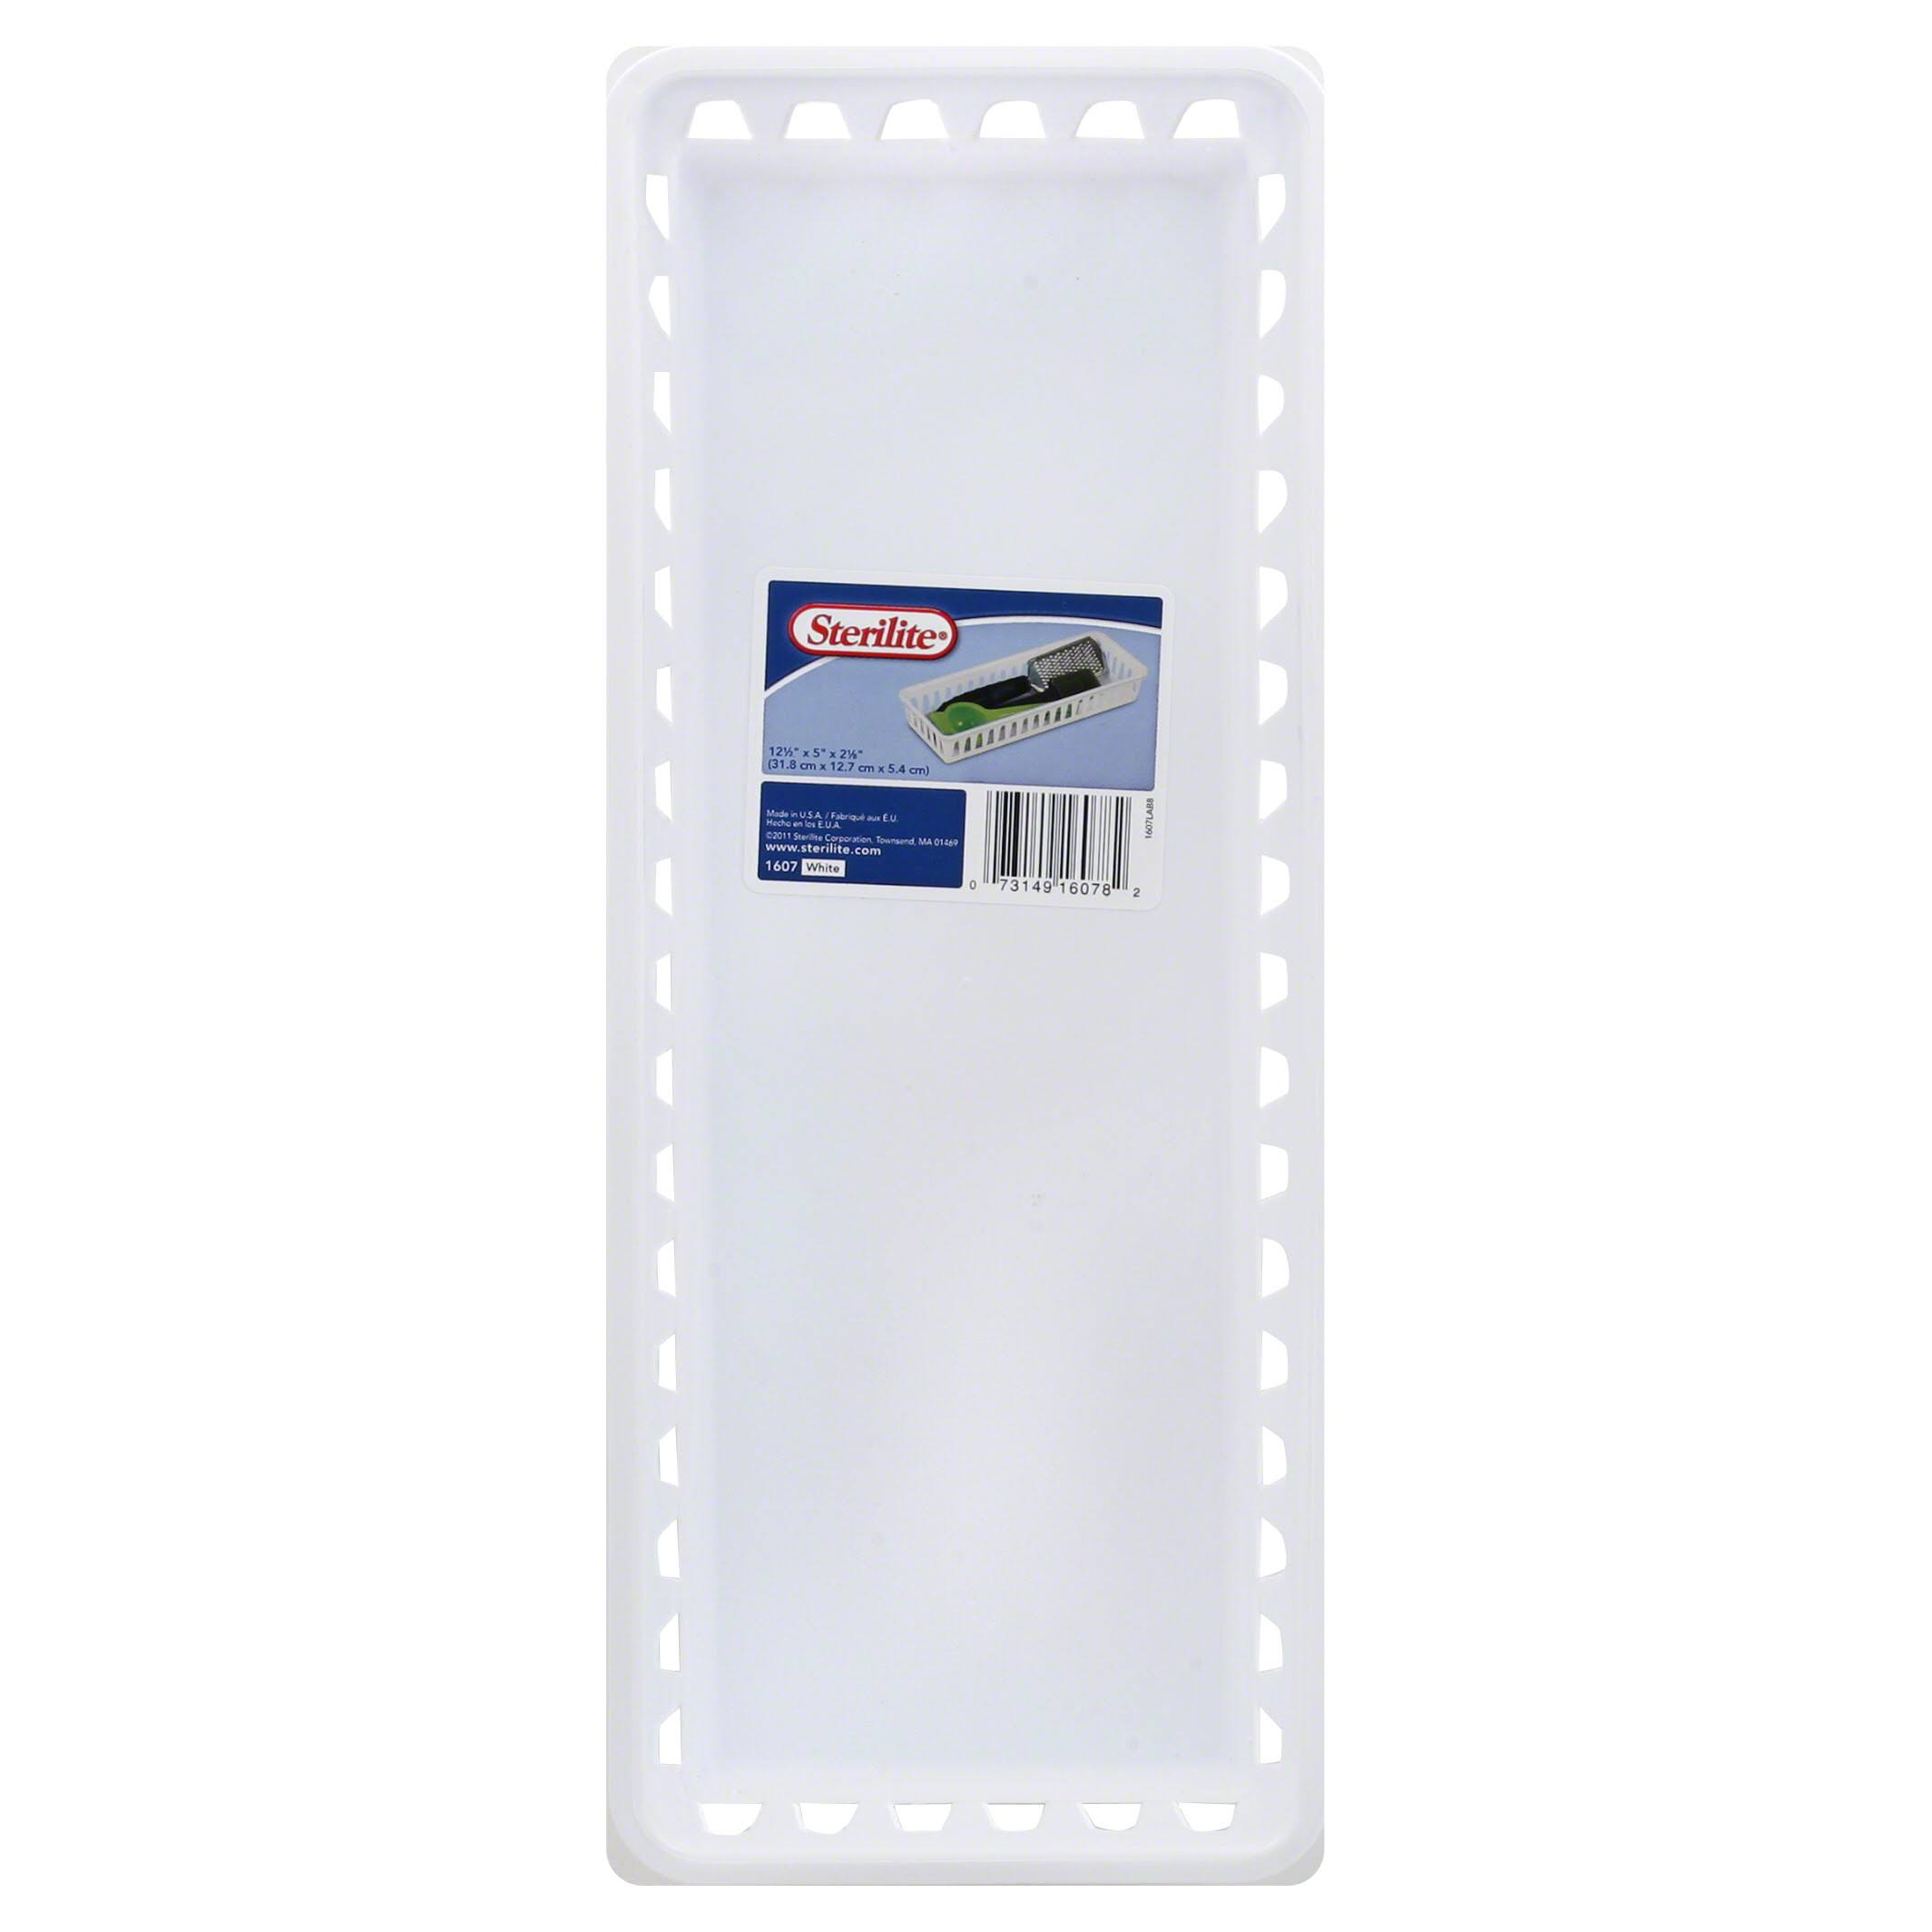 Sterilite Slim Storage Tray - White